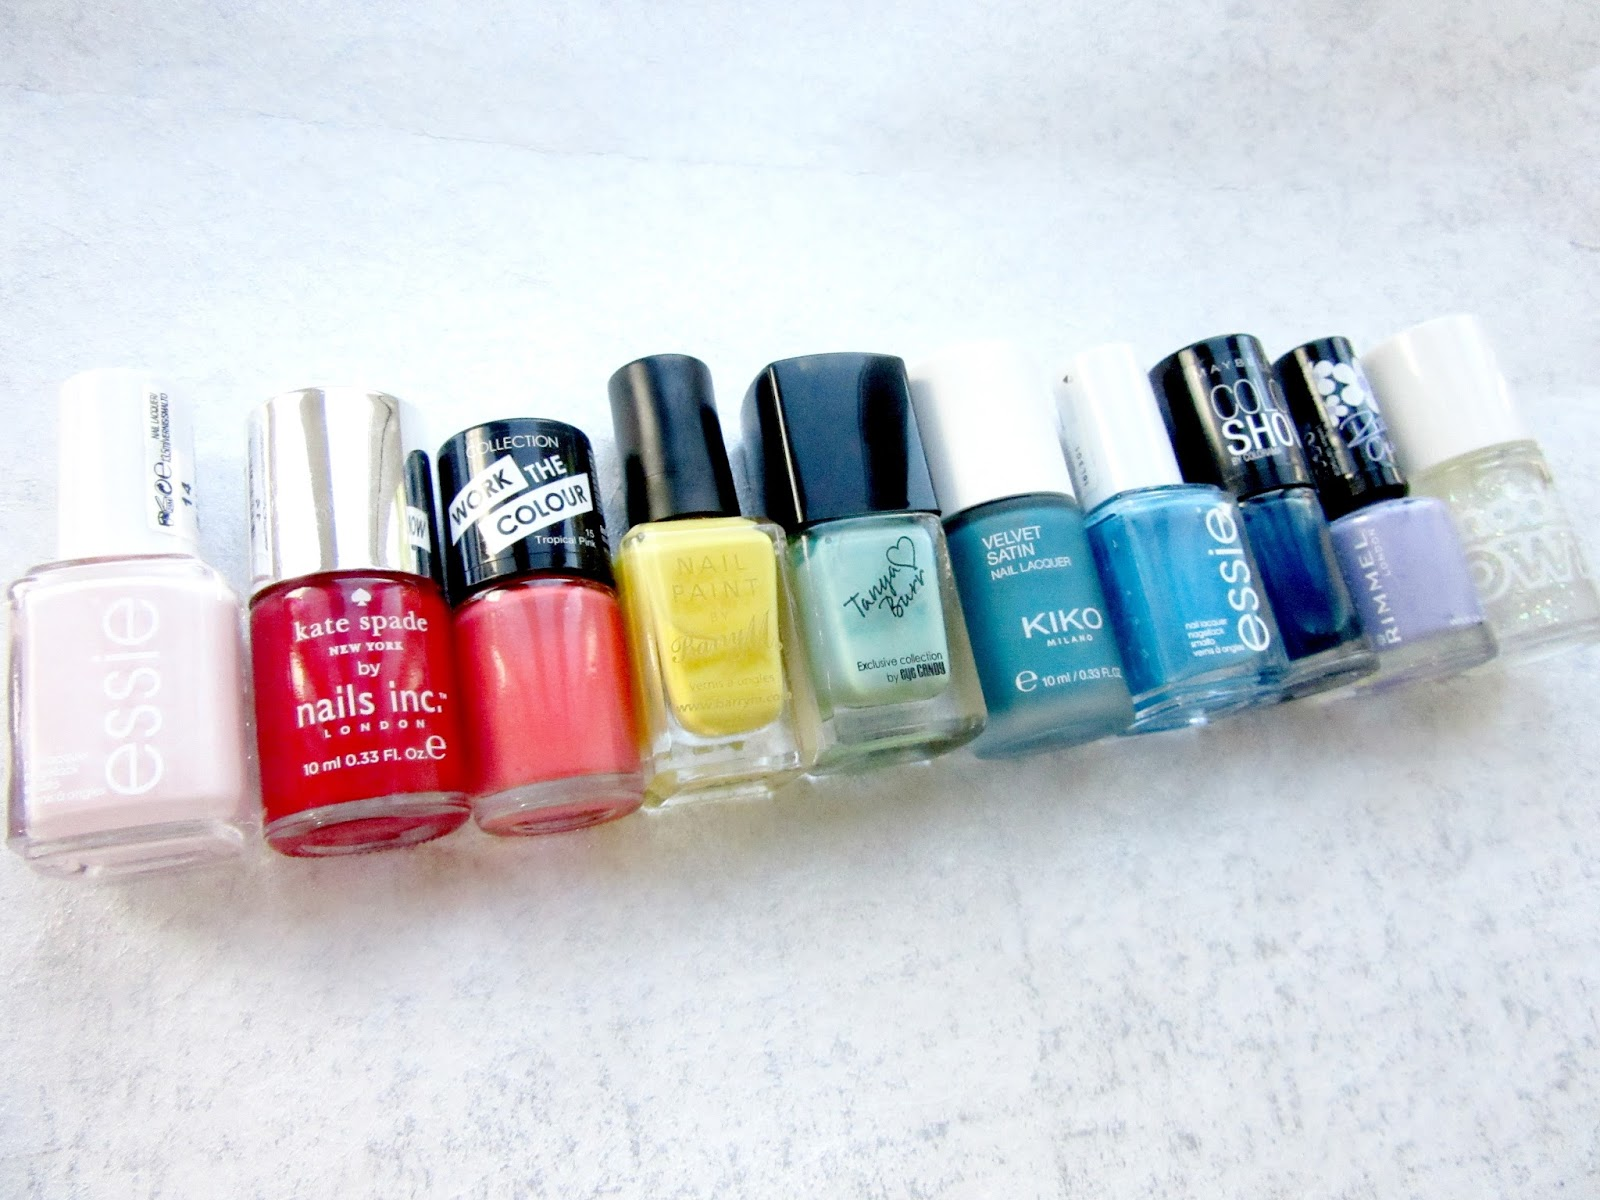 High Street Beauty Junkie: A Colour Spectrum of Nail Polishes: My Top 10